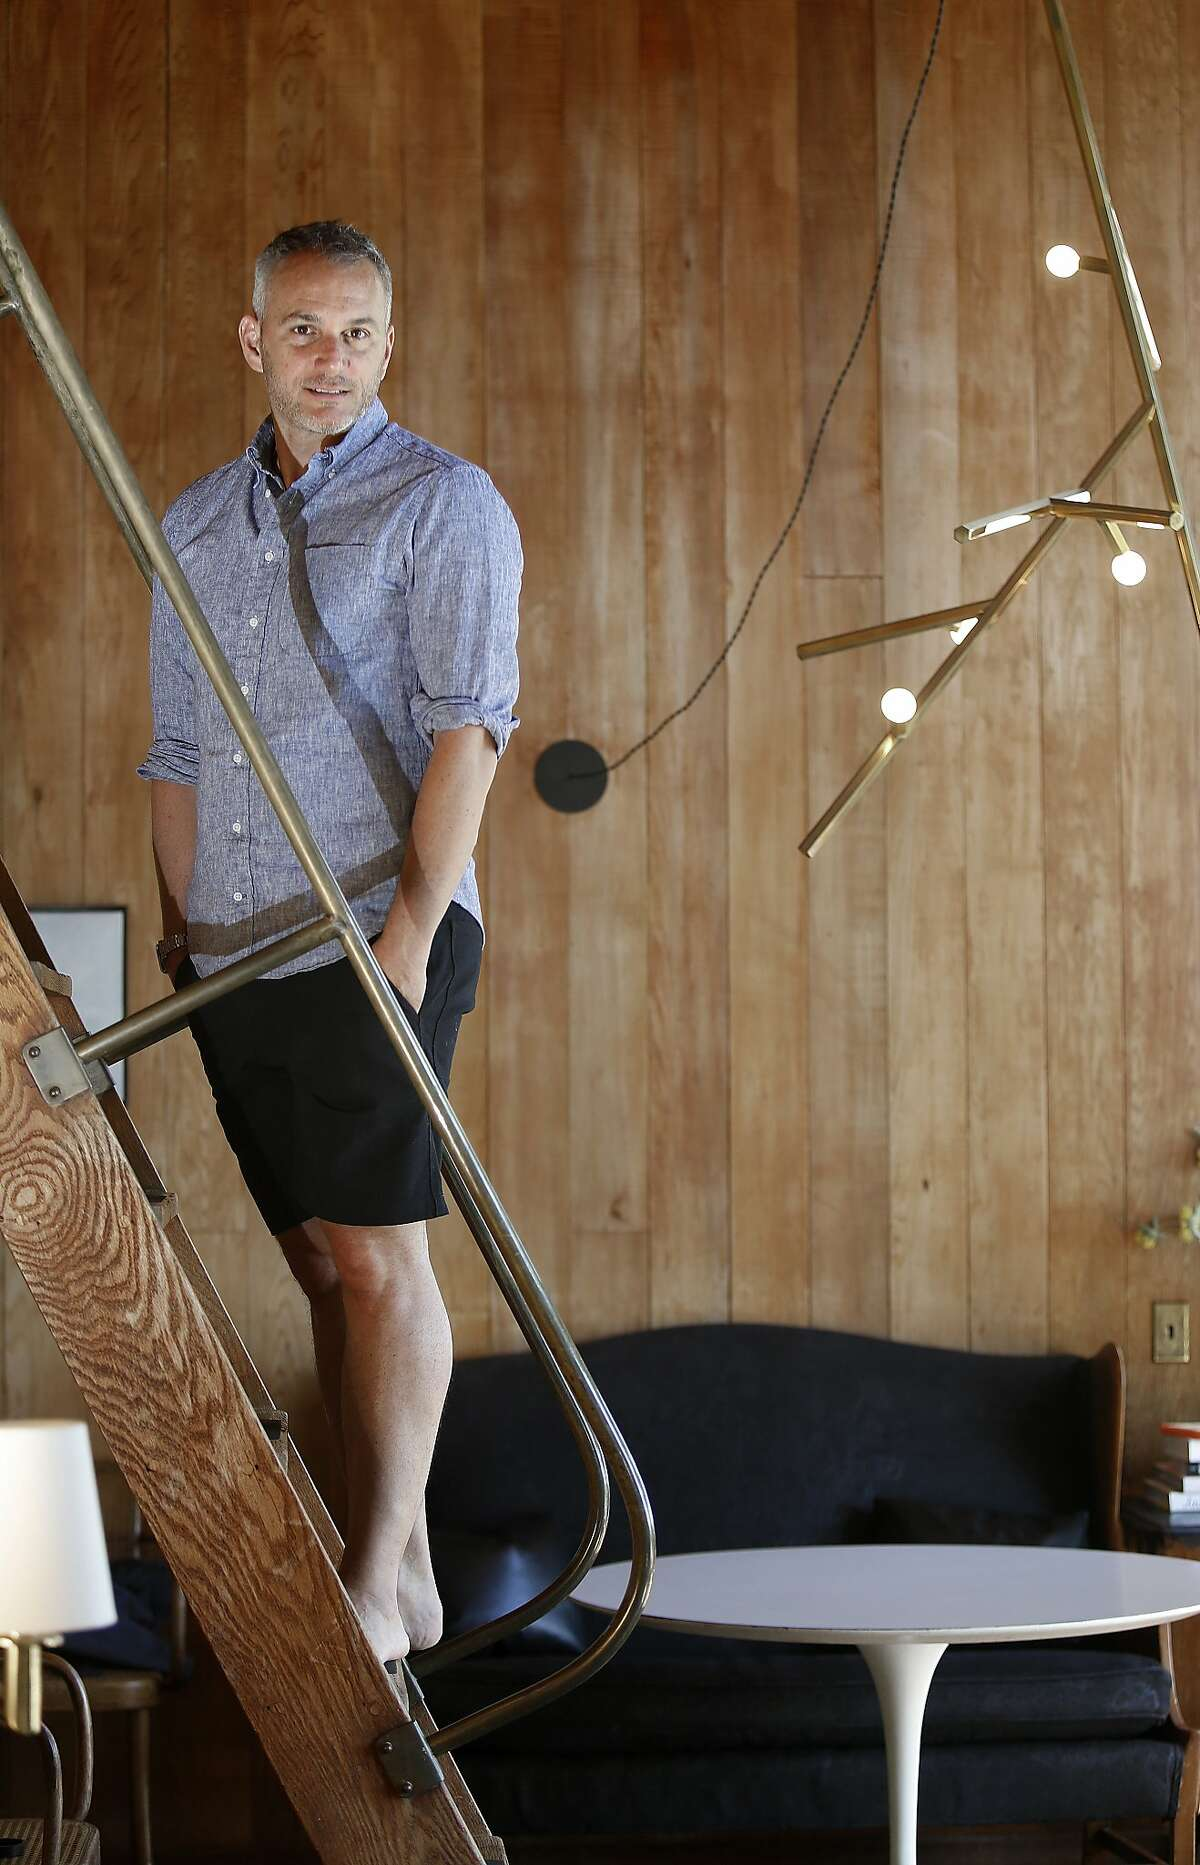 Designer Charles de Lisle shows his home as he uses the stairway from the second floor in Mill Valley, California, on Monday, April 27, 2015. At right is a prototype of a Linden chandelier hanging from the ceiling.